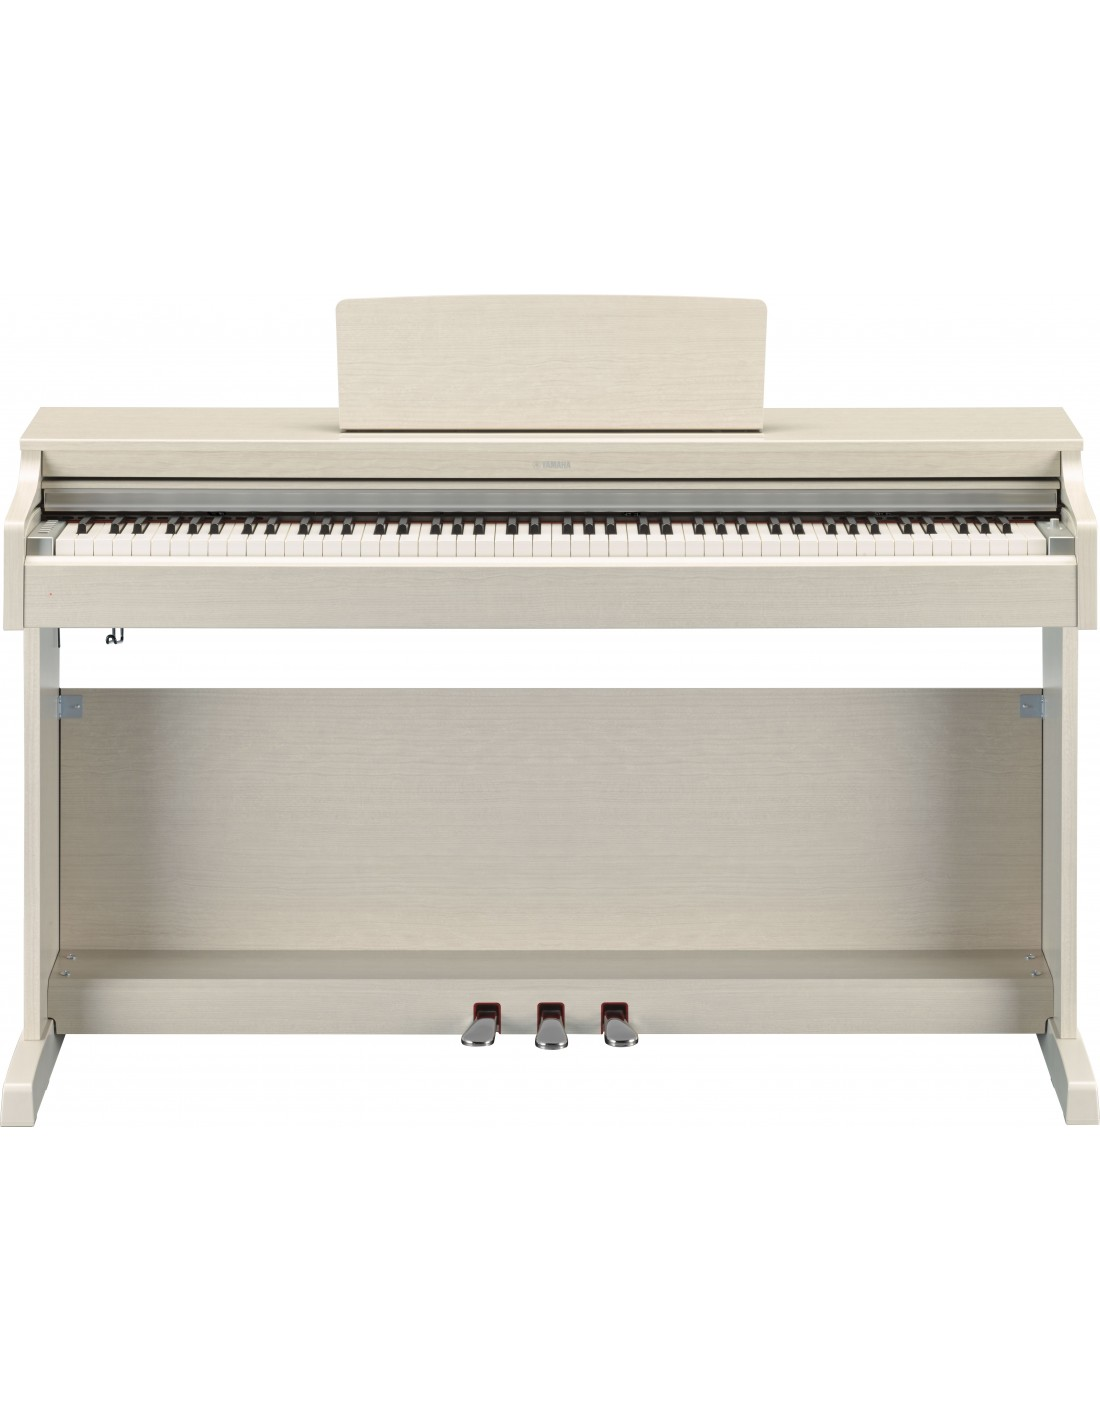 yamaha ydp163 wa arius piano num rique 88 notes toucher. Black Bedroom Furniture Sets. Home Design Ideas